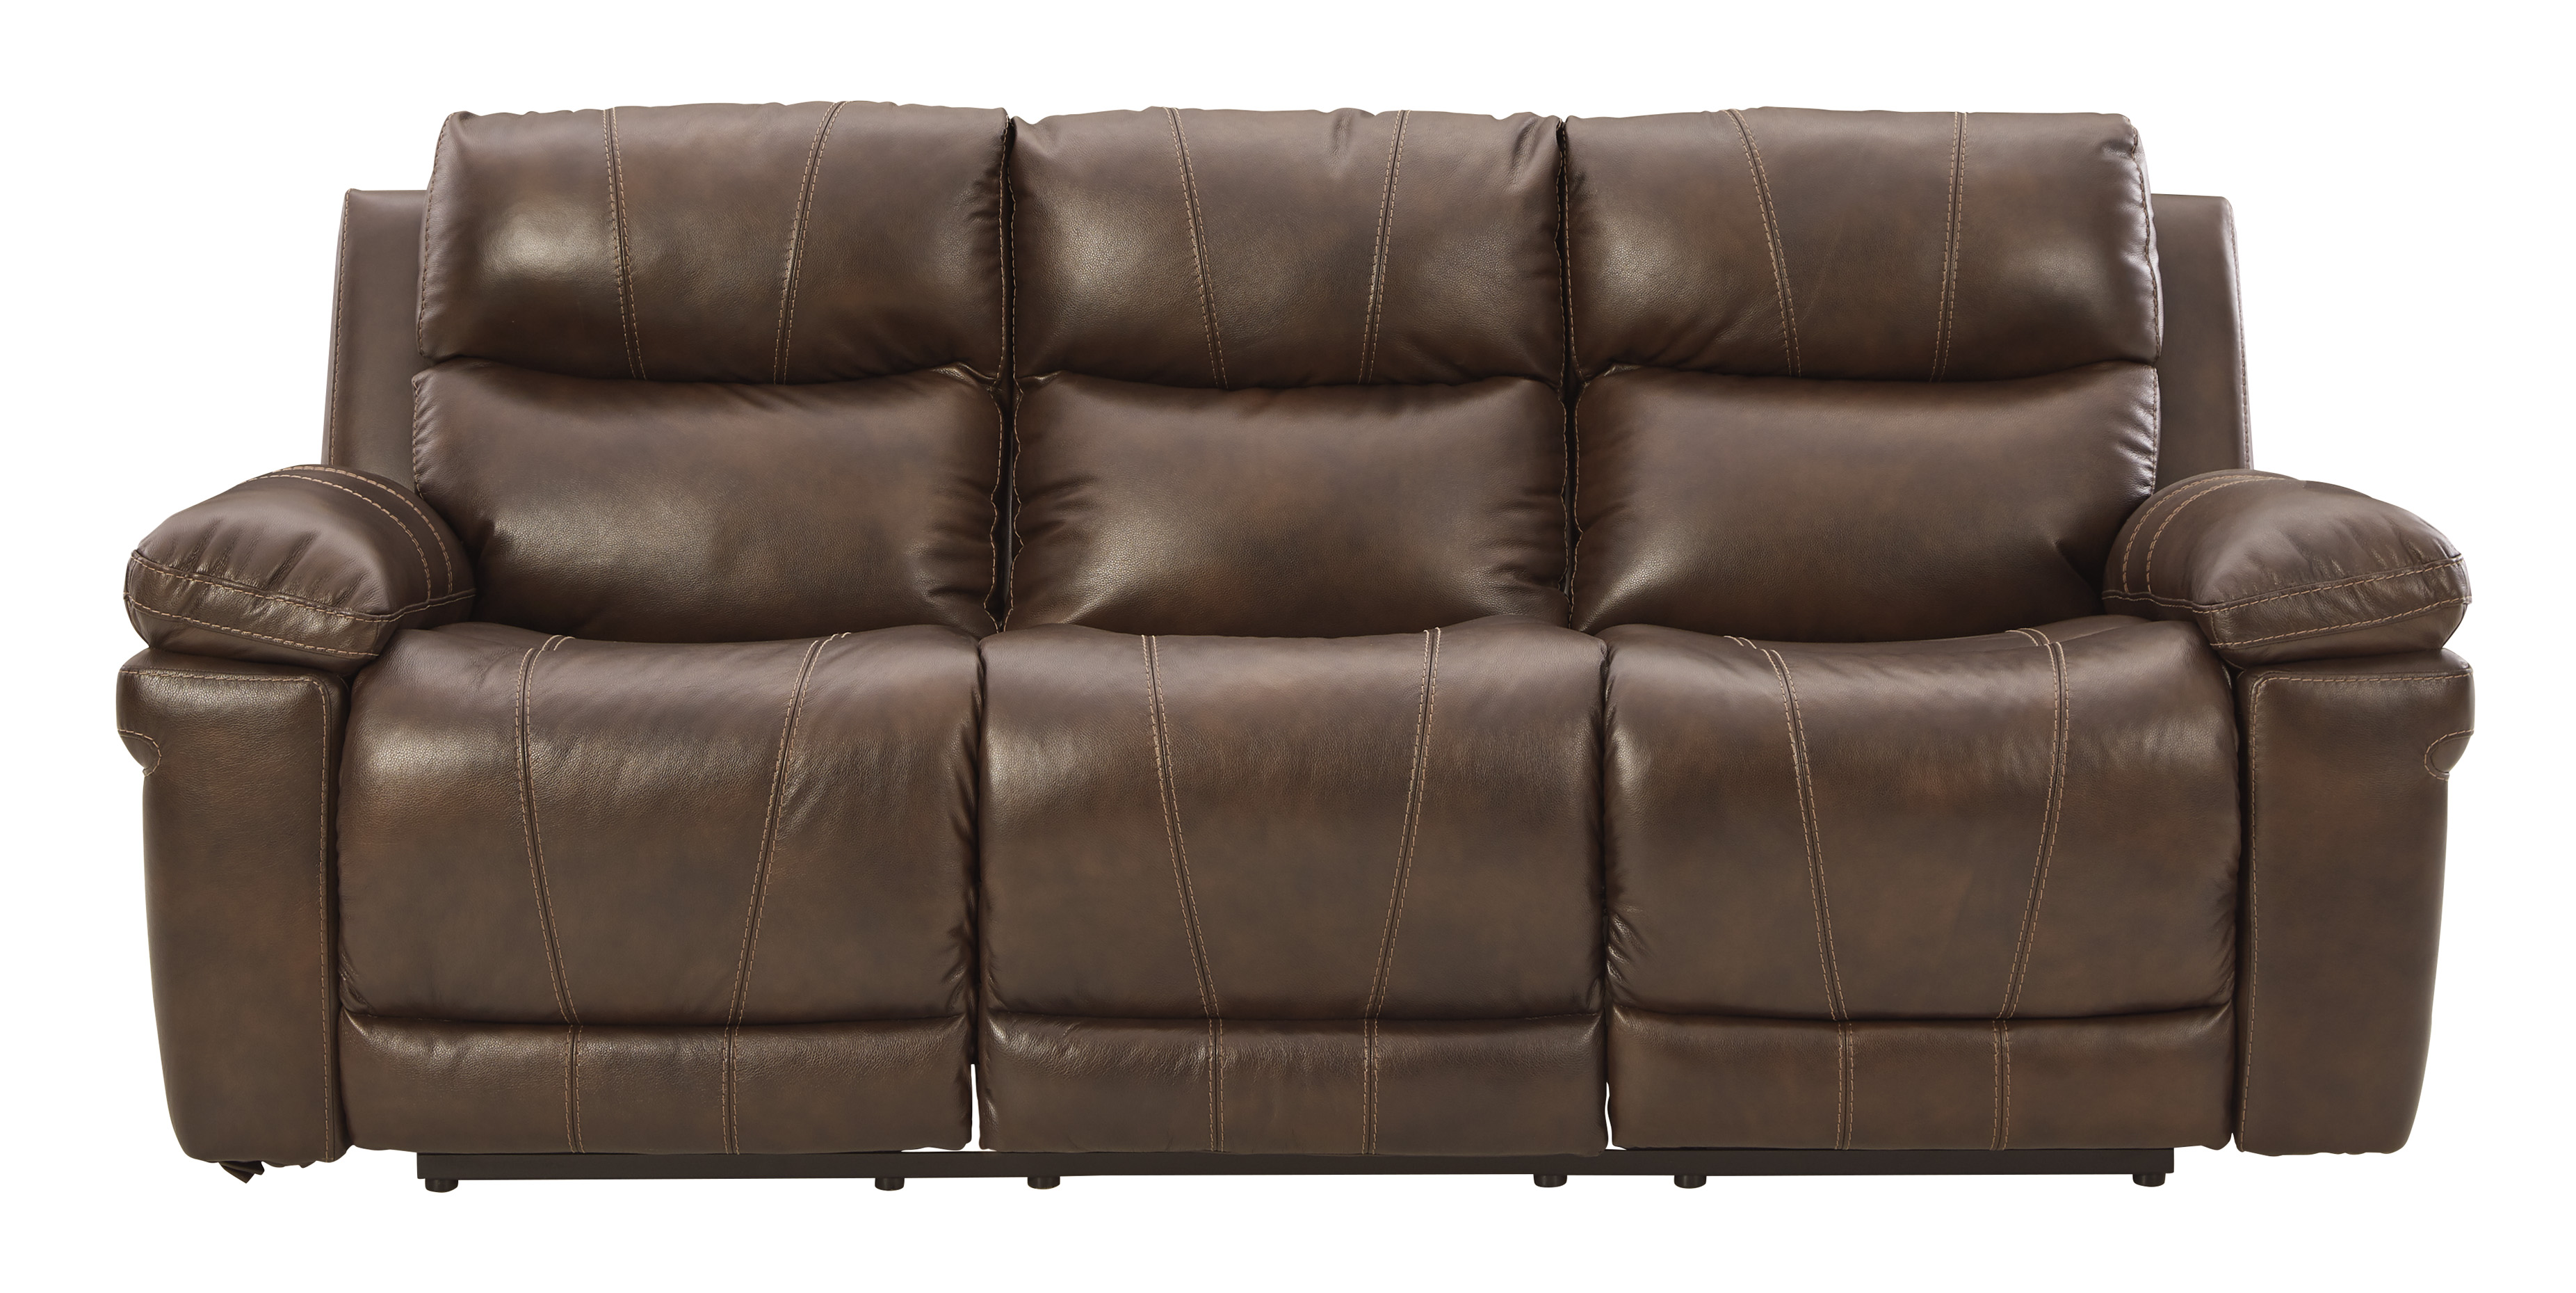 Edmar Power Reclining Sofa by Signature Design by Ashley at Prime Brothers Furniture